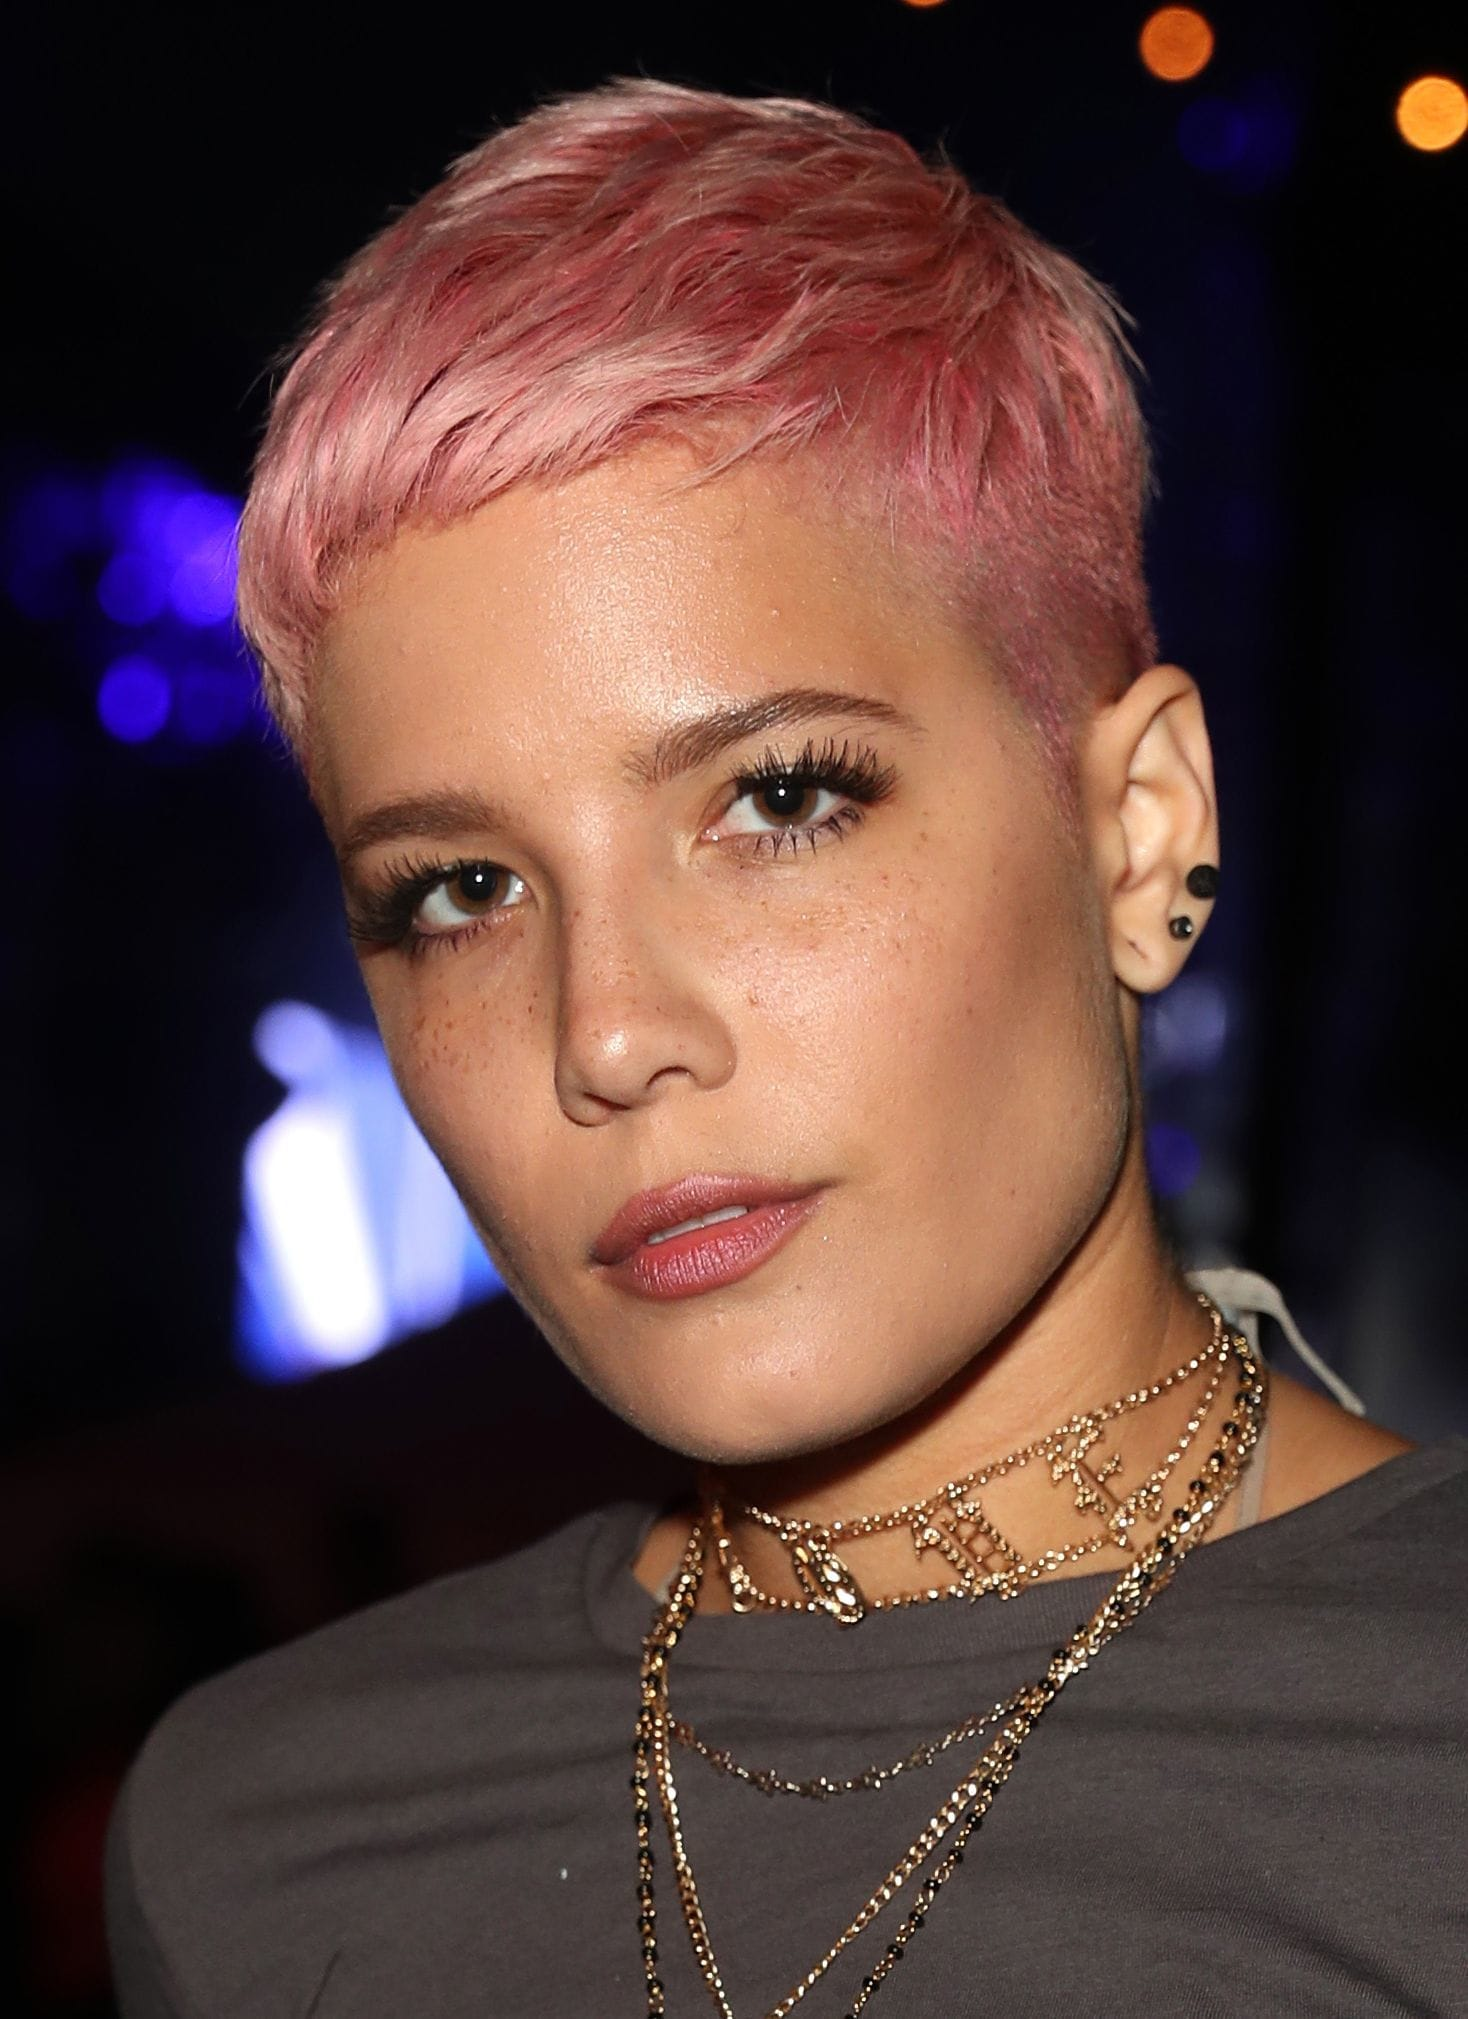 Halsey - bright pink pixie cut - 2017 - Rex